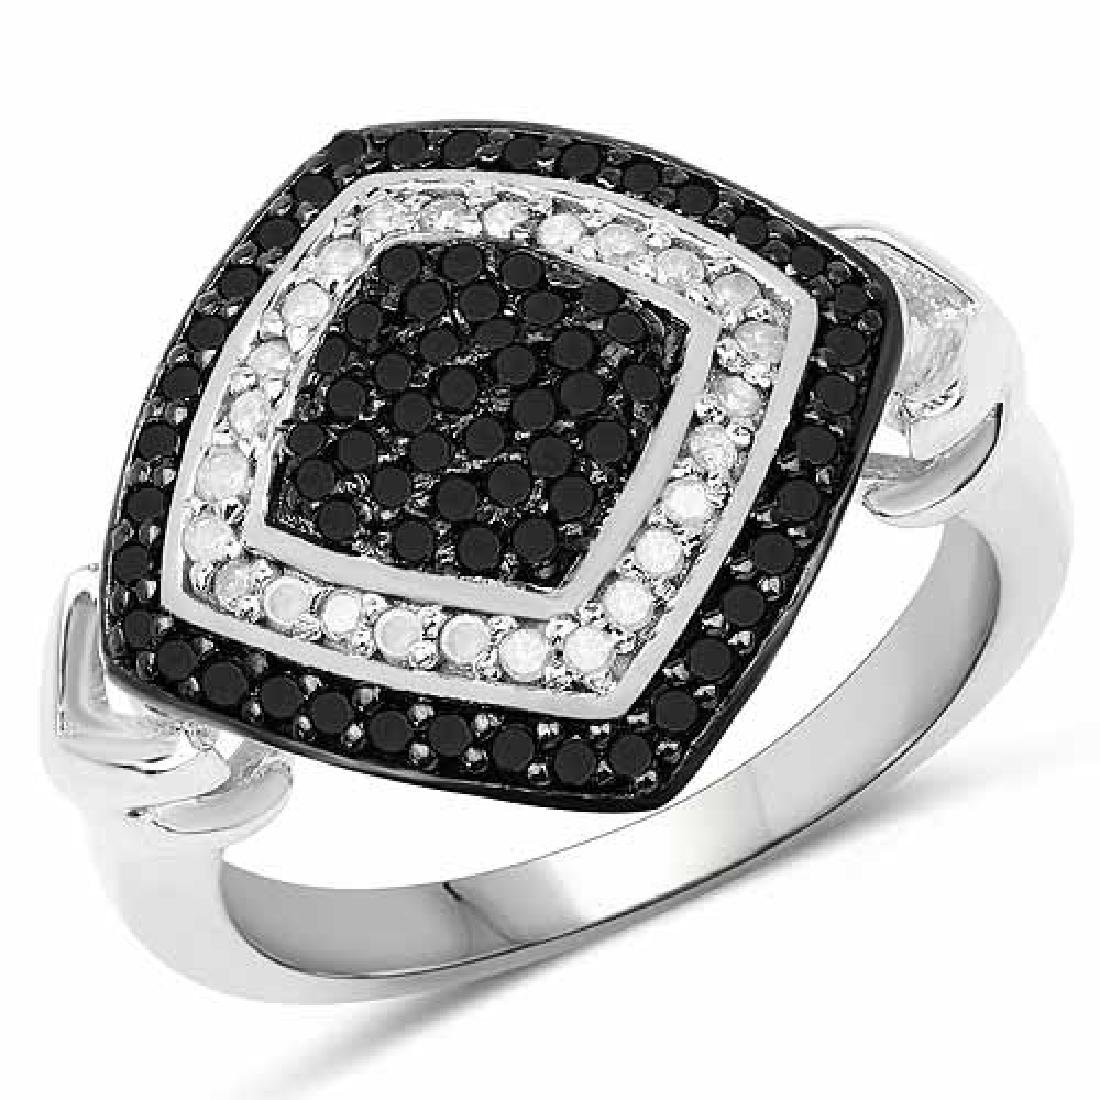 0.56 Carat Genuine White Diamond and Black Diamond .925